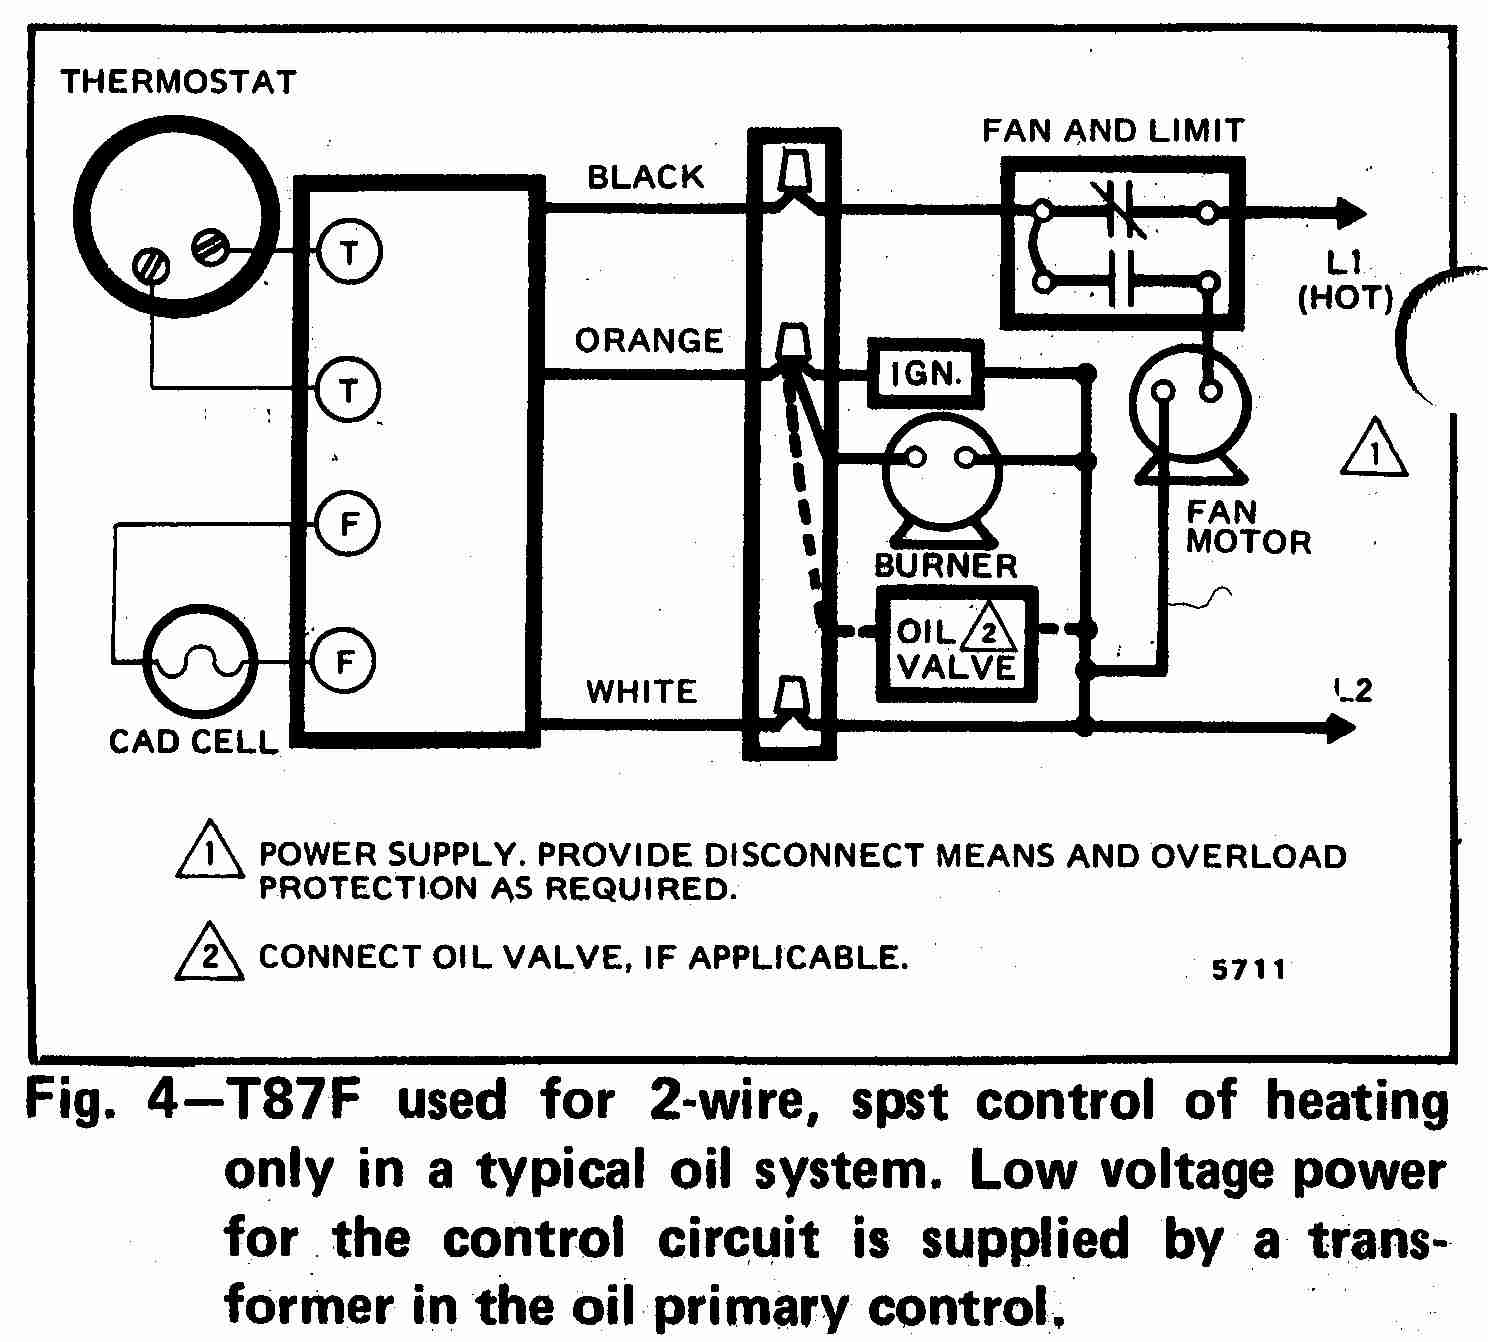 Typical Thermostat Wiring Diagram - Wiring Diagrams Hubs - Furnace Wiring Diagram